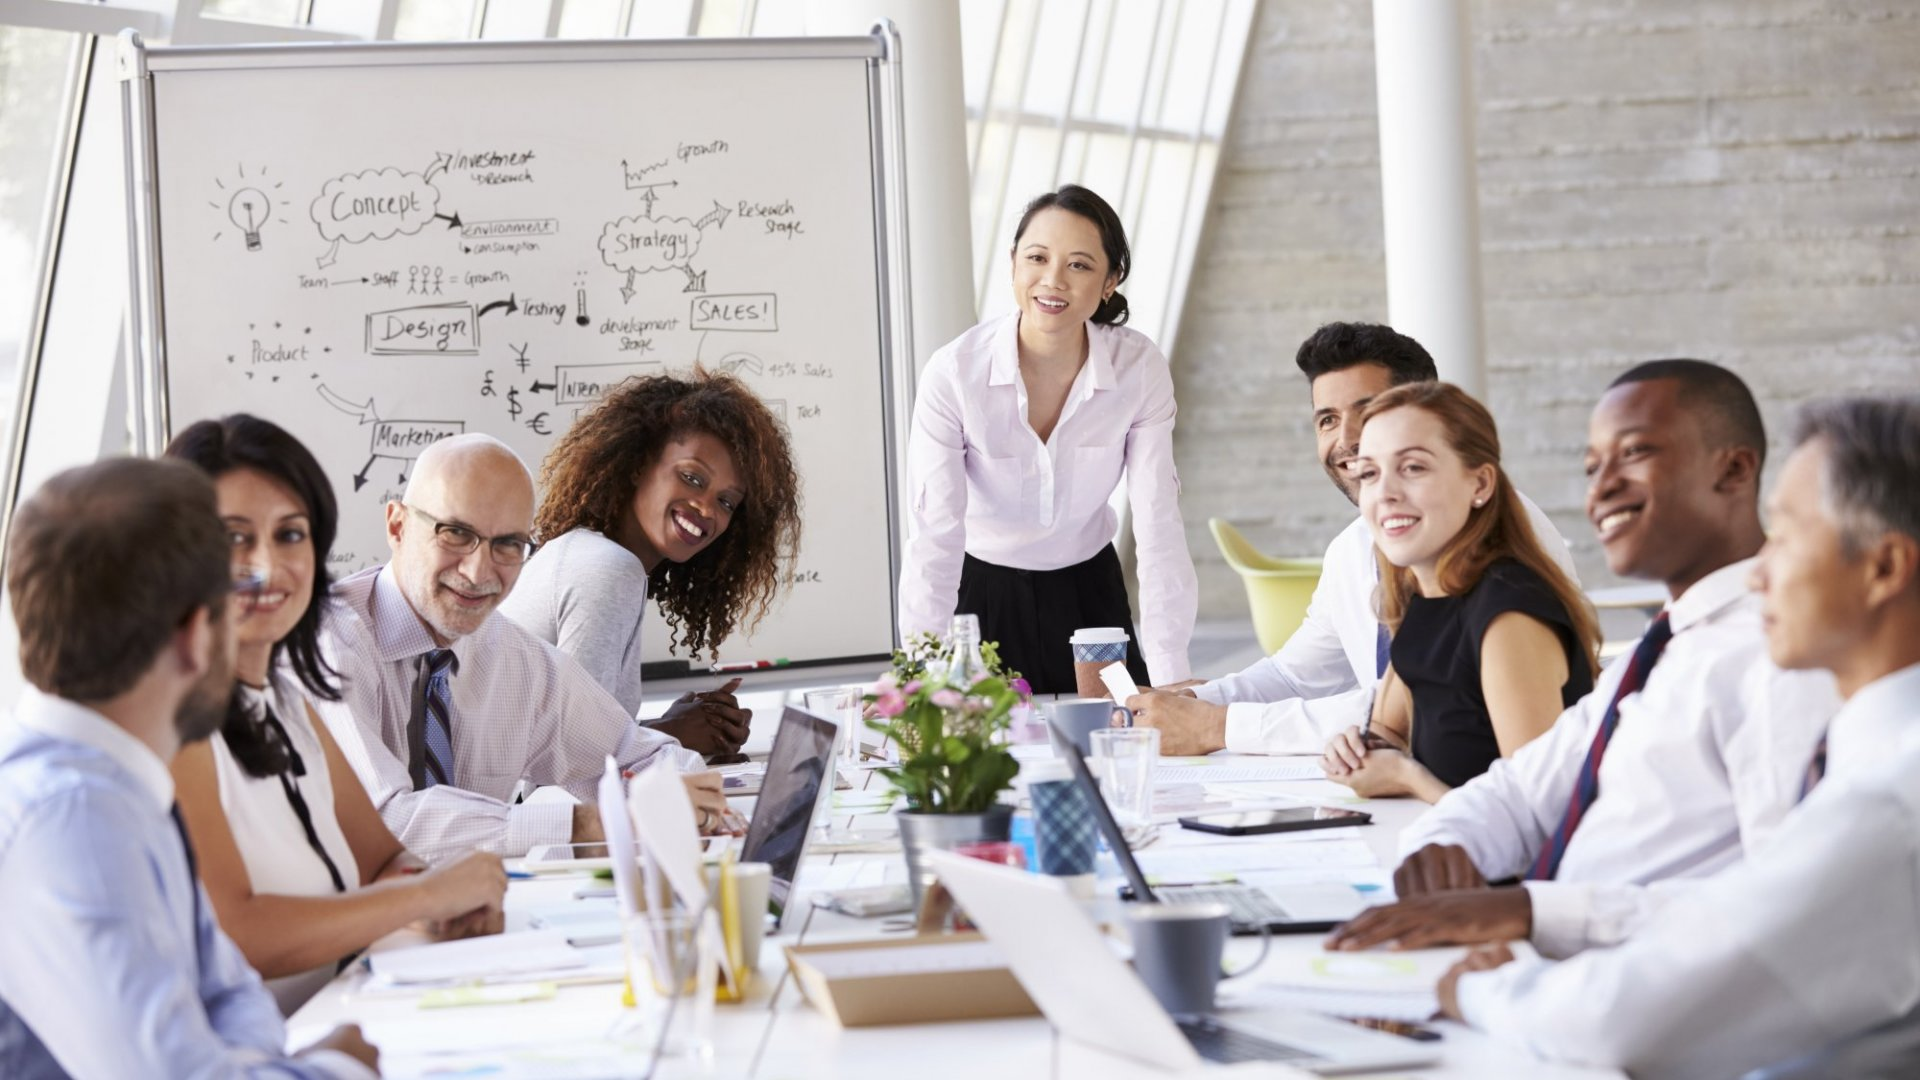 9 Remarkably Effective Ways to Motivate Your Team